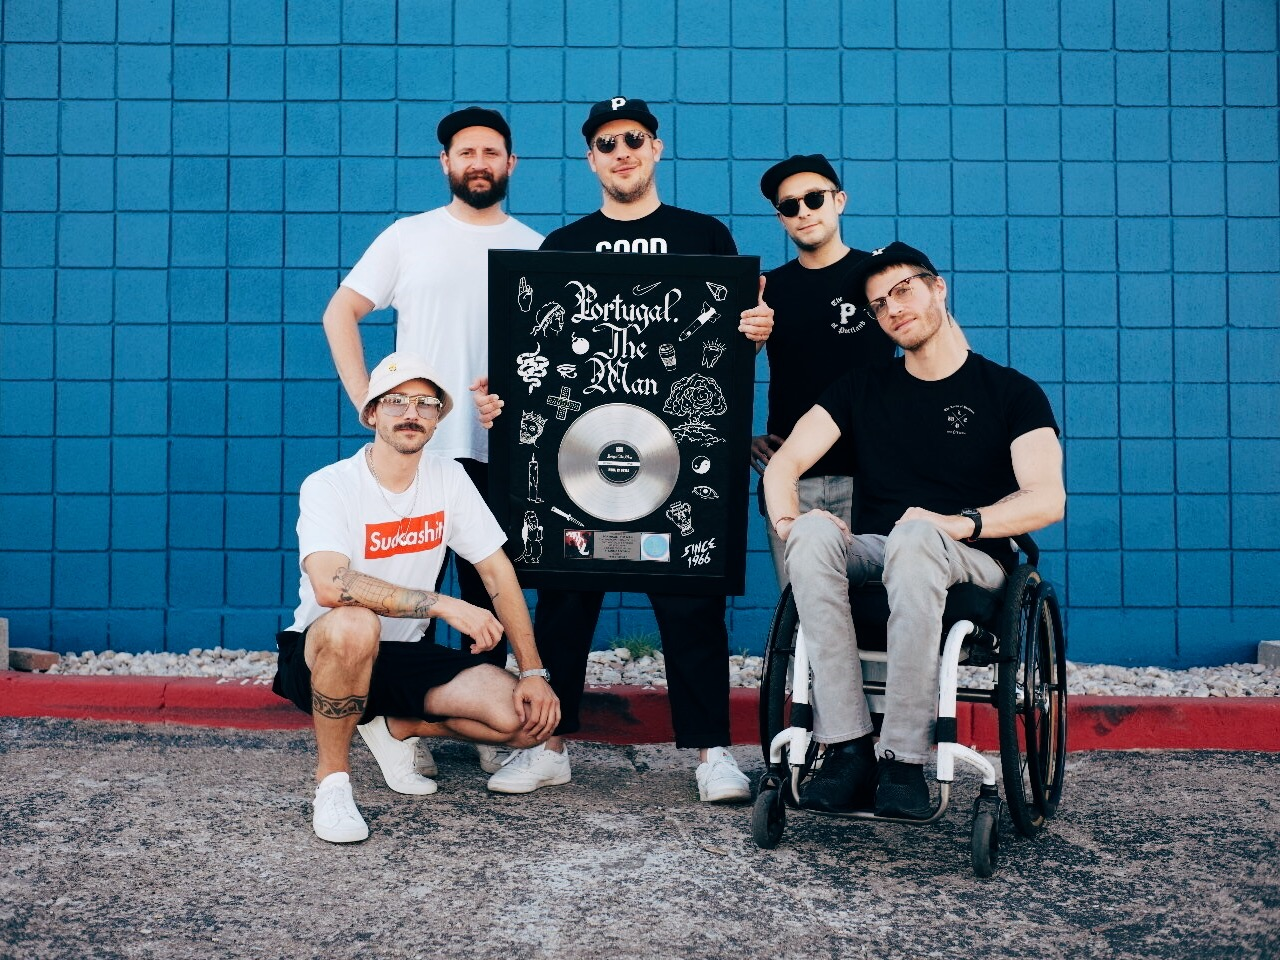 Alaska Grown Portugal The Man Gets First Grammy Nomination